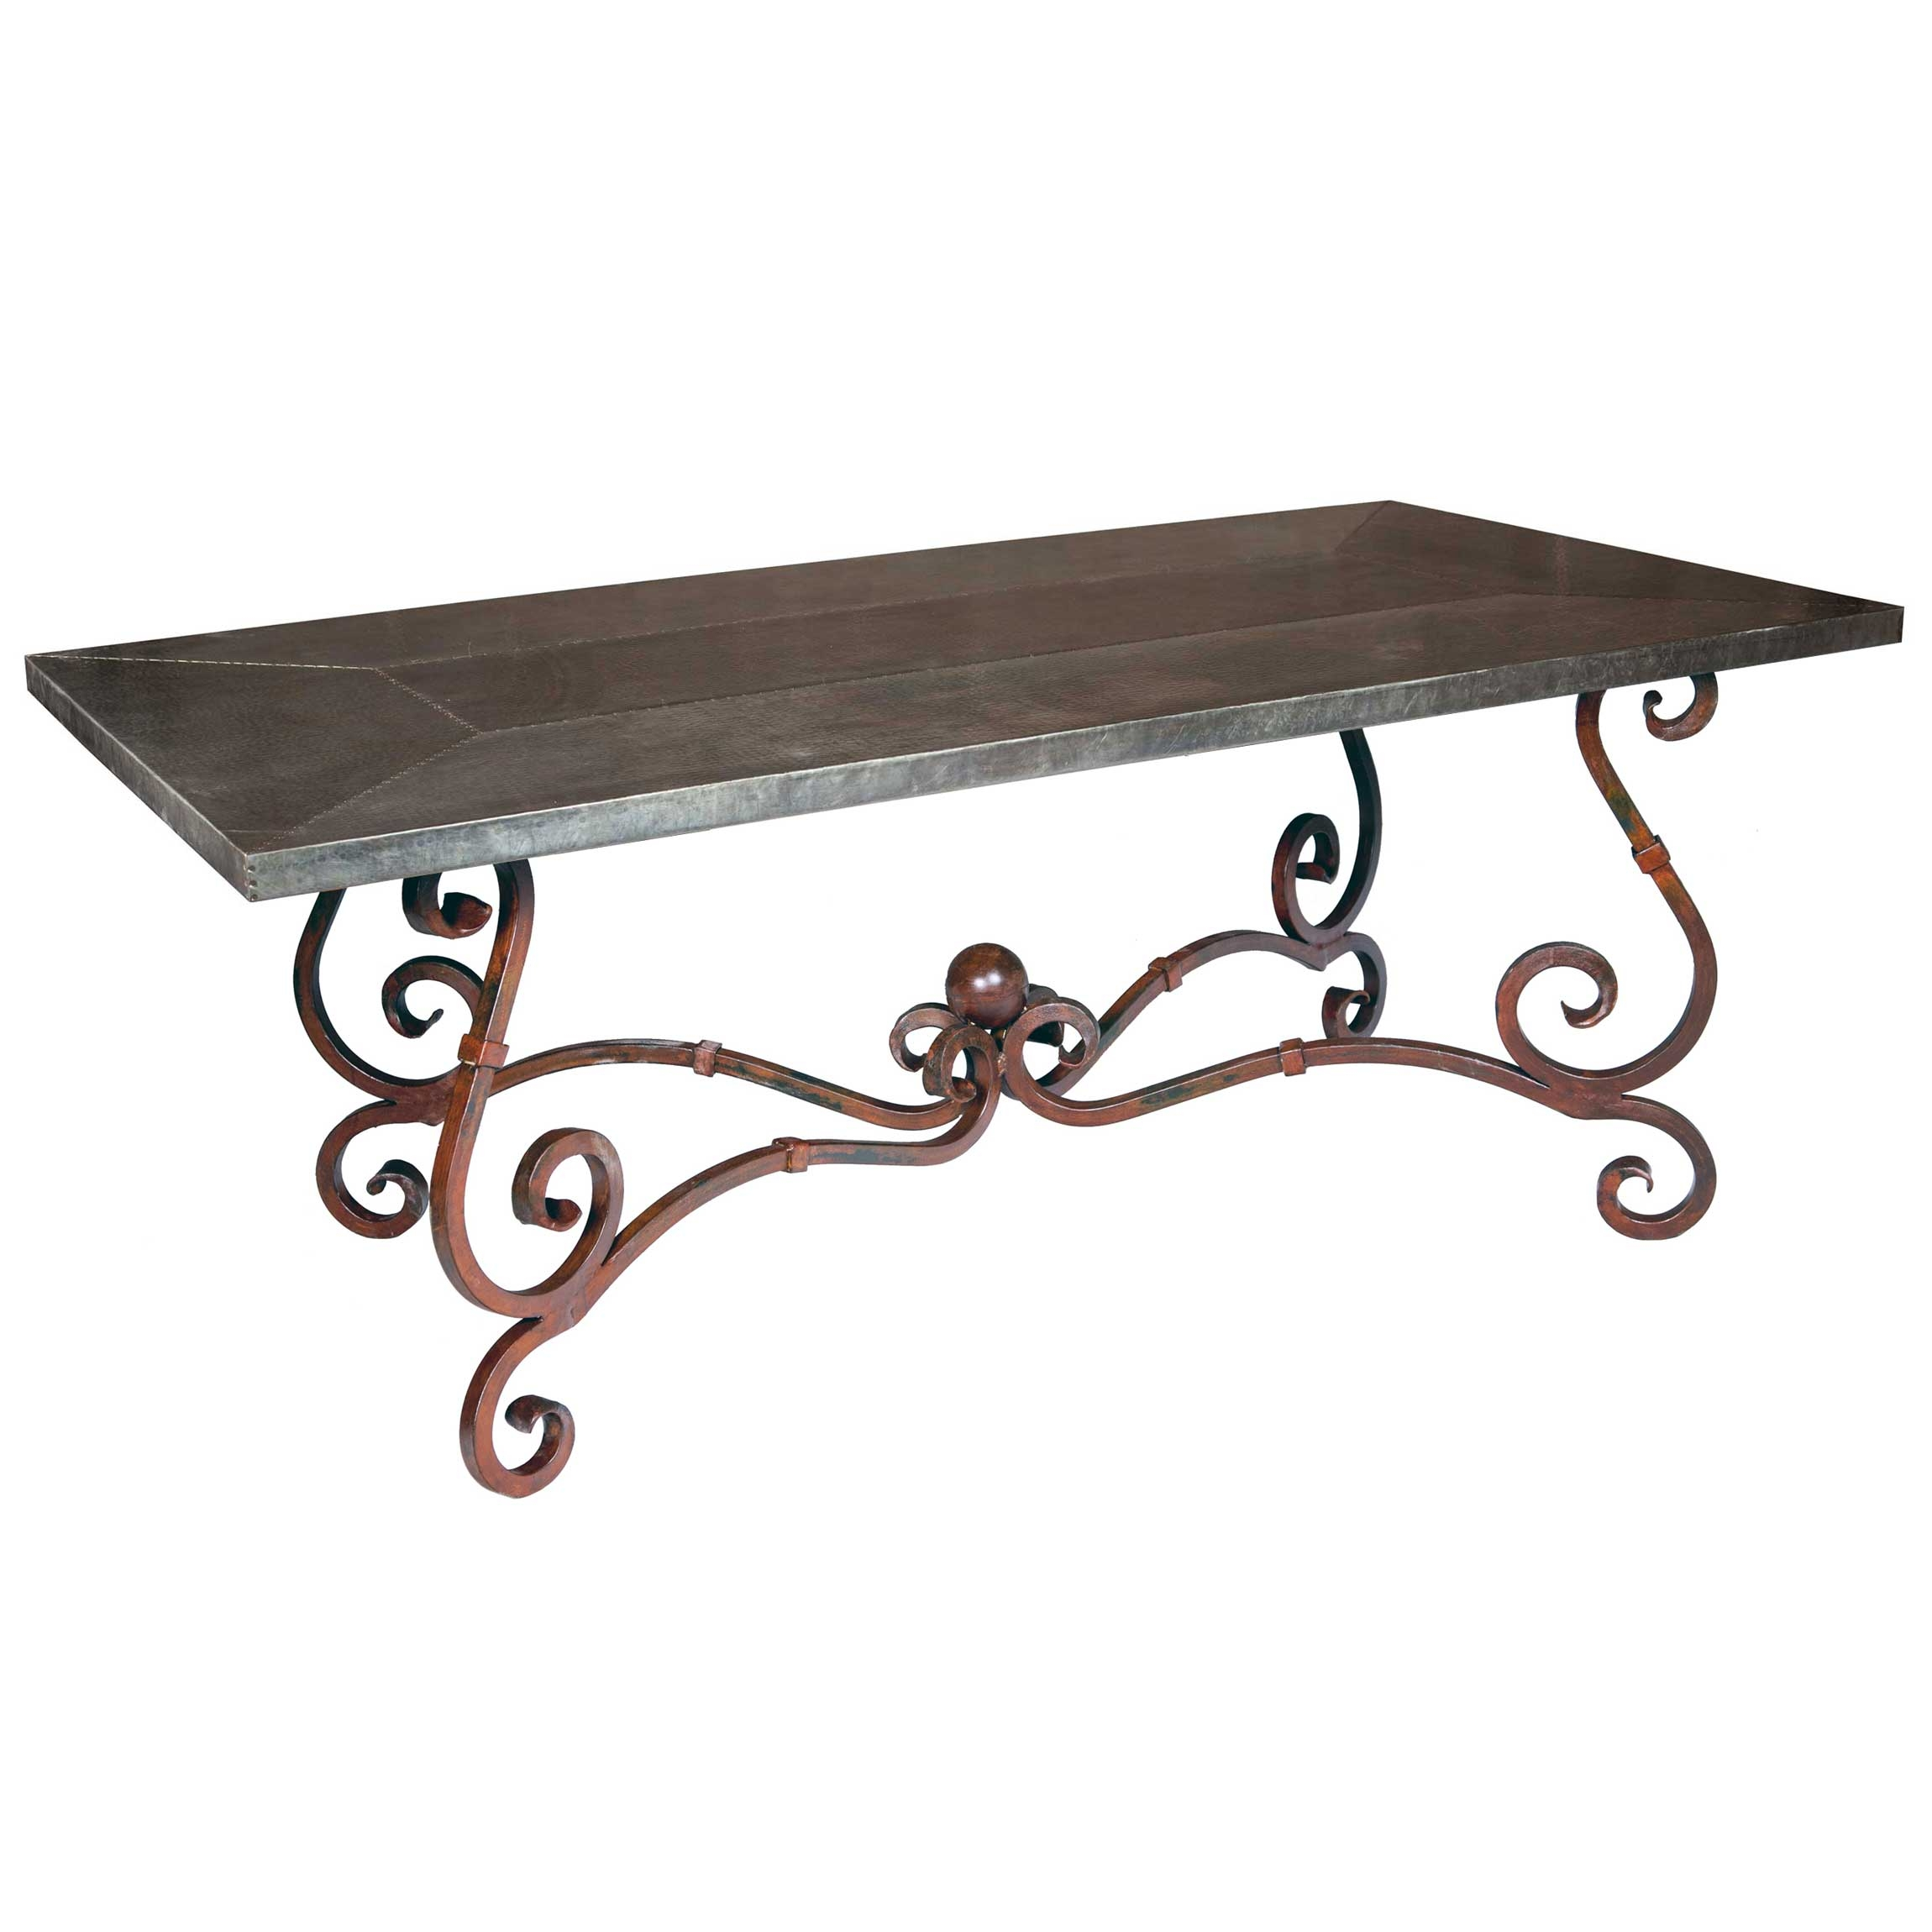 Zinc Dining Table French French Iron Rectangle Dining Table With Hammered Zinc Top